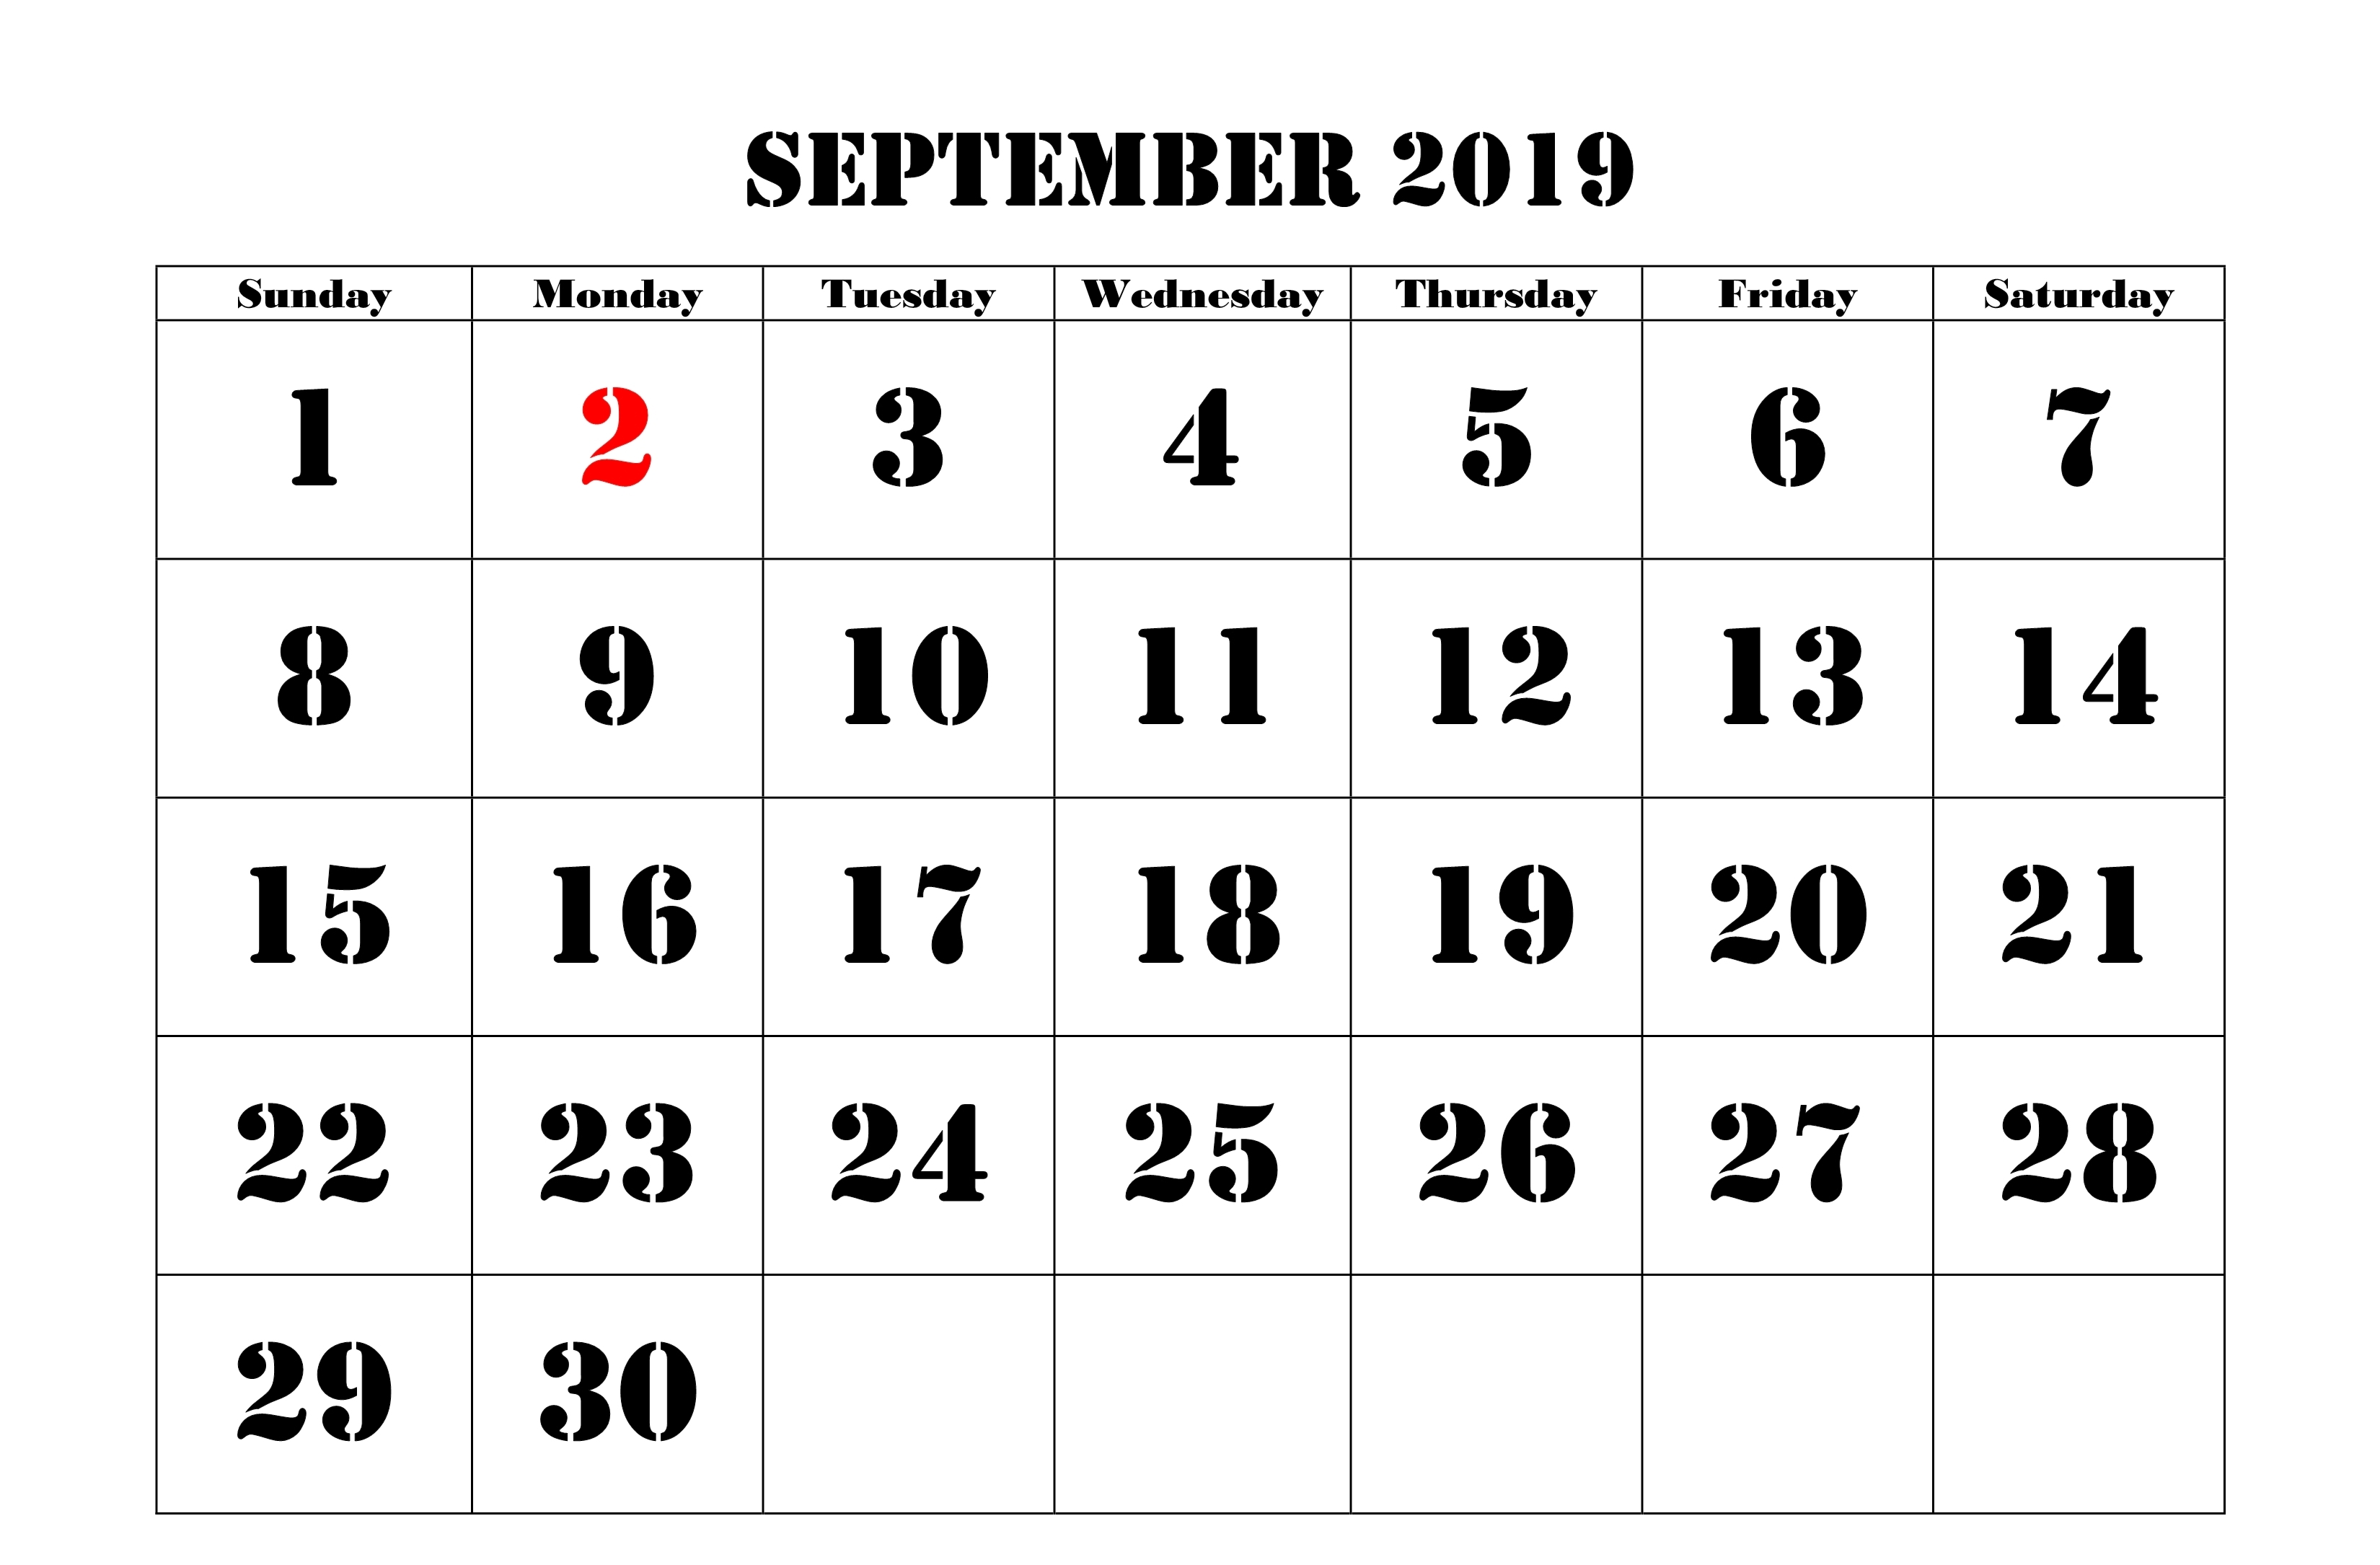 September 2019 Calendar with Holidays US